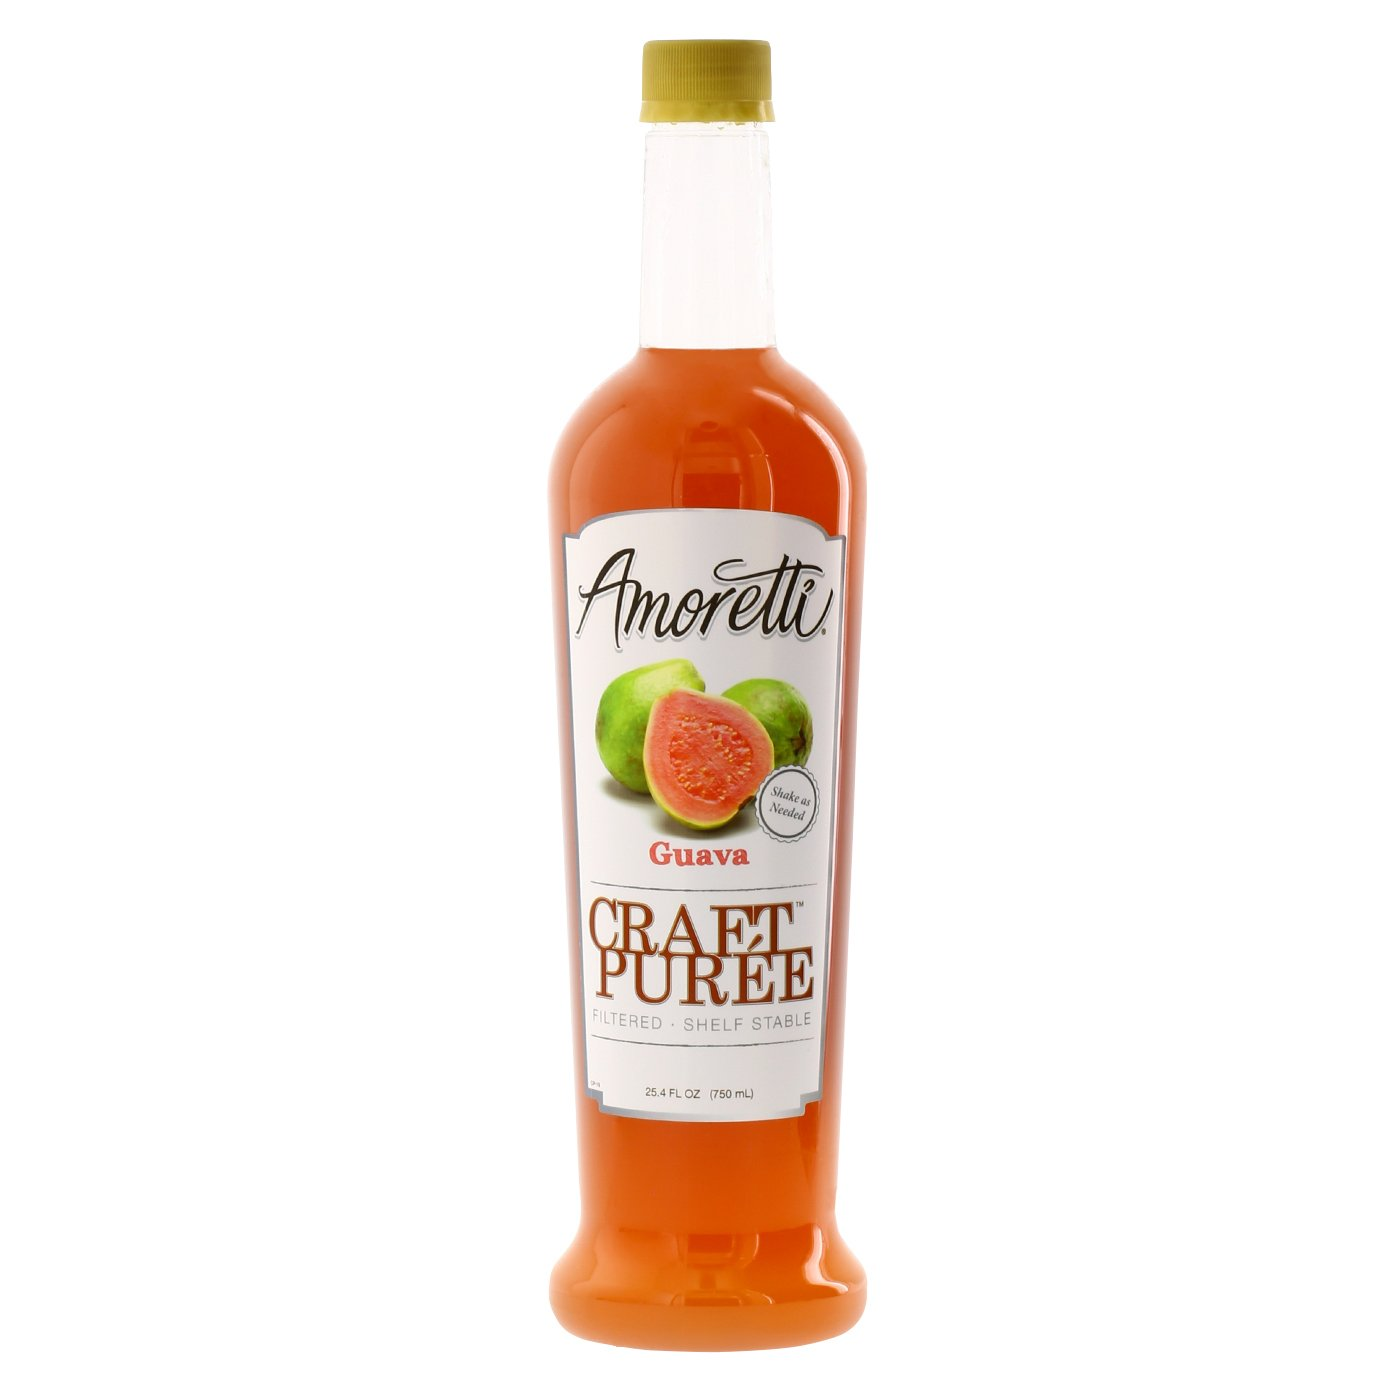 Guava Craft Puree®